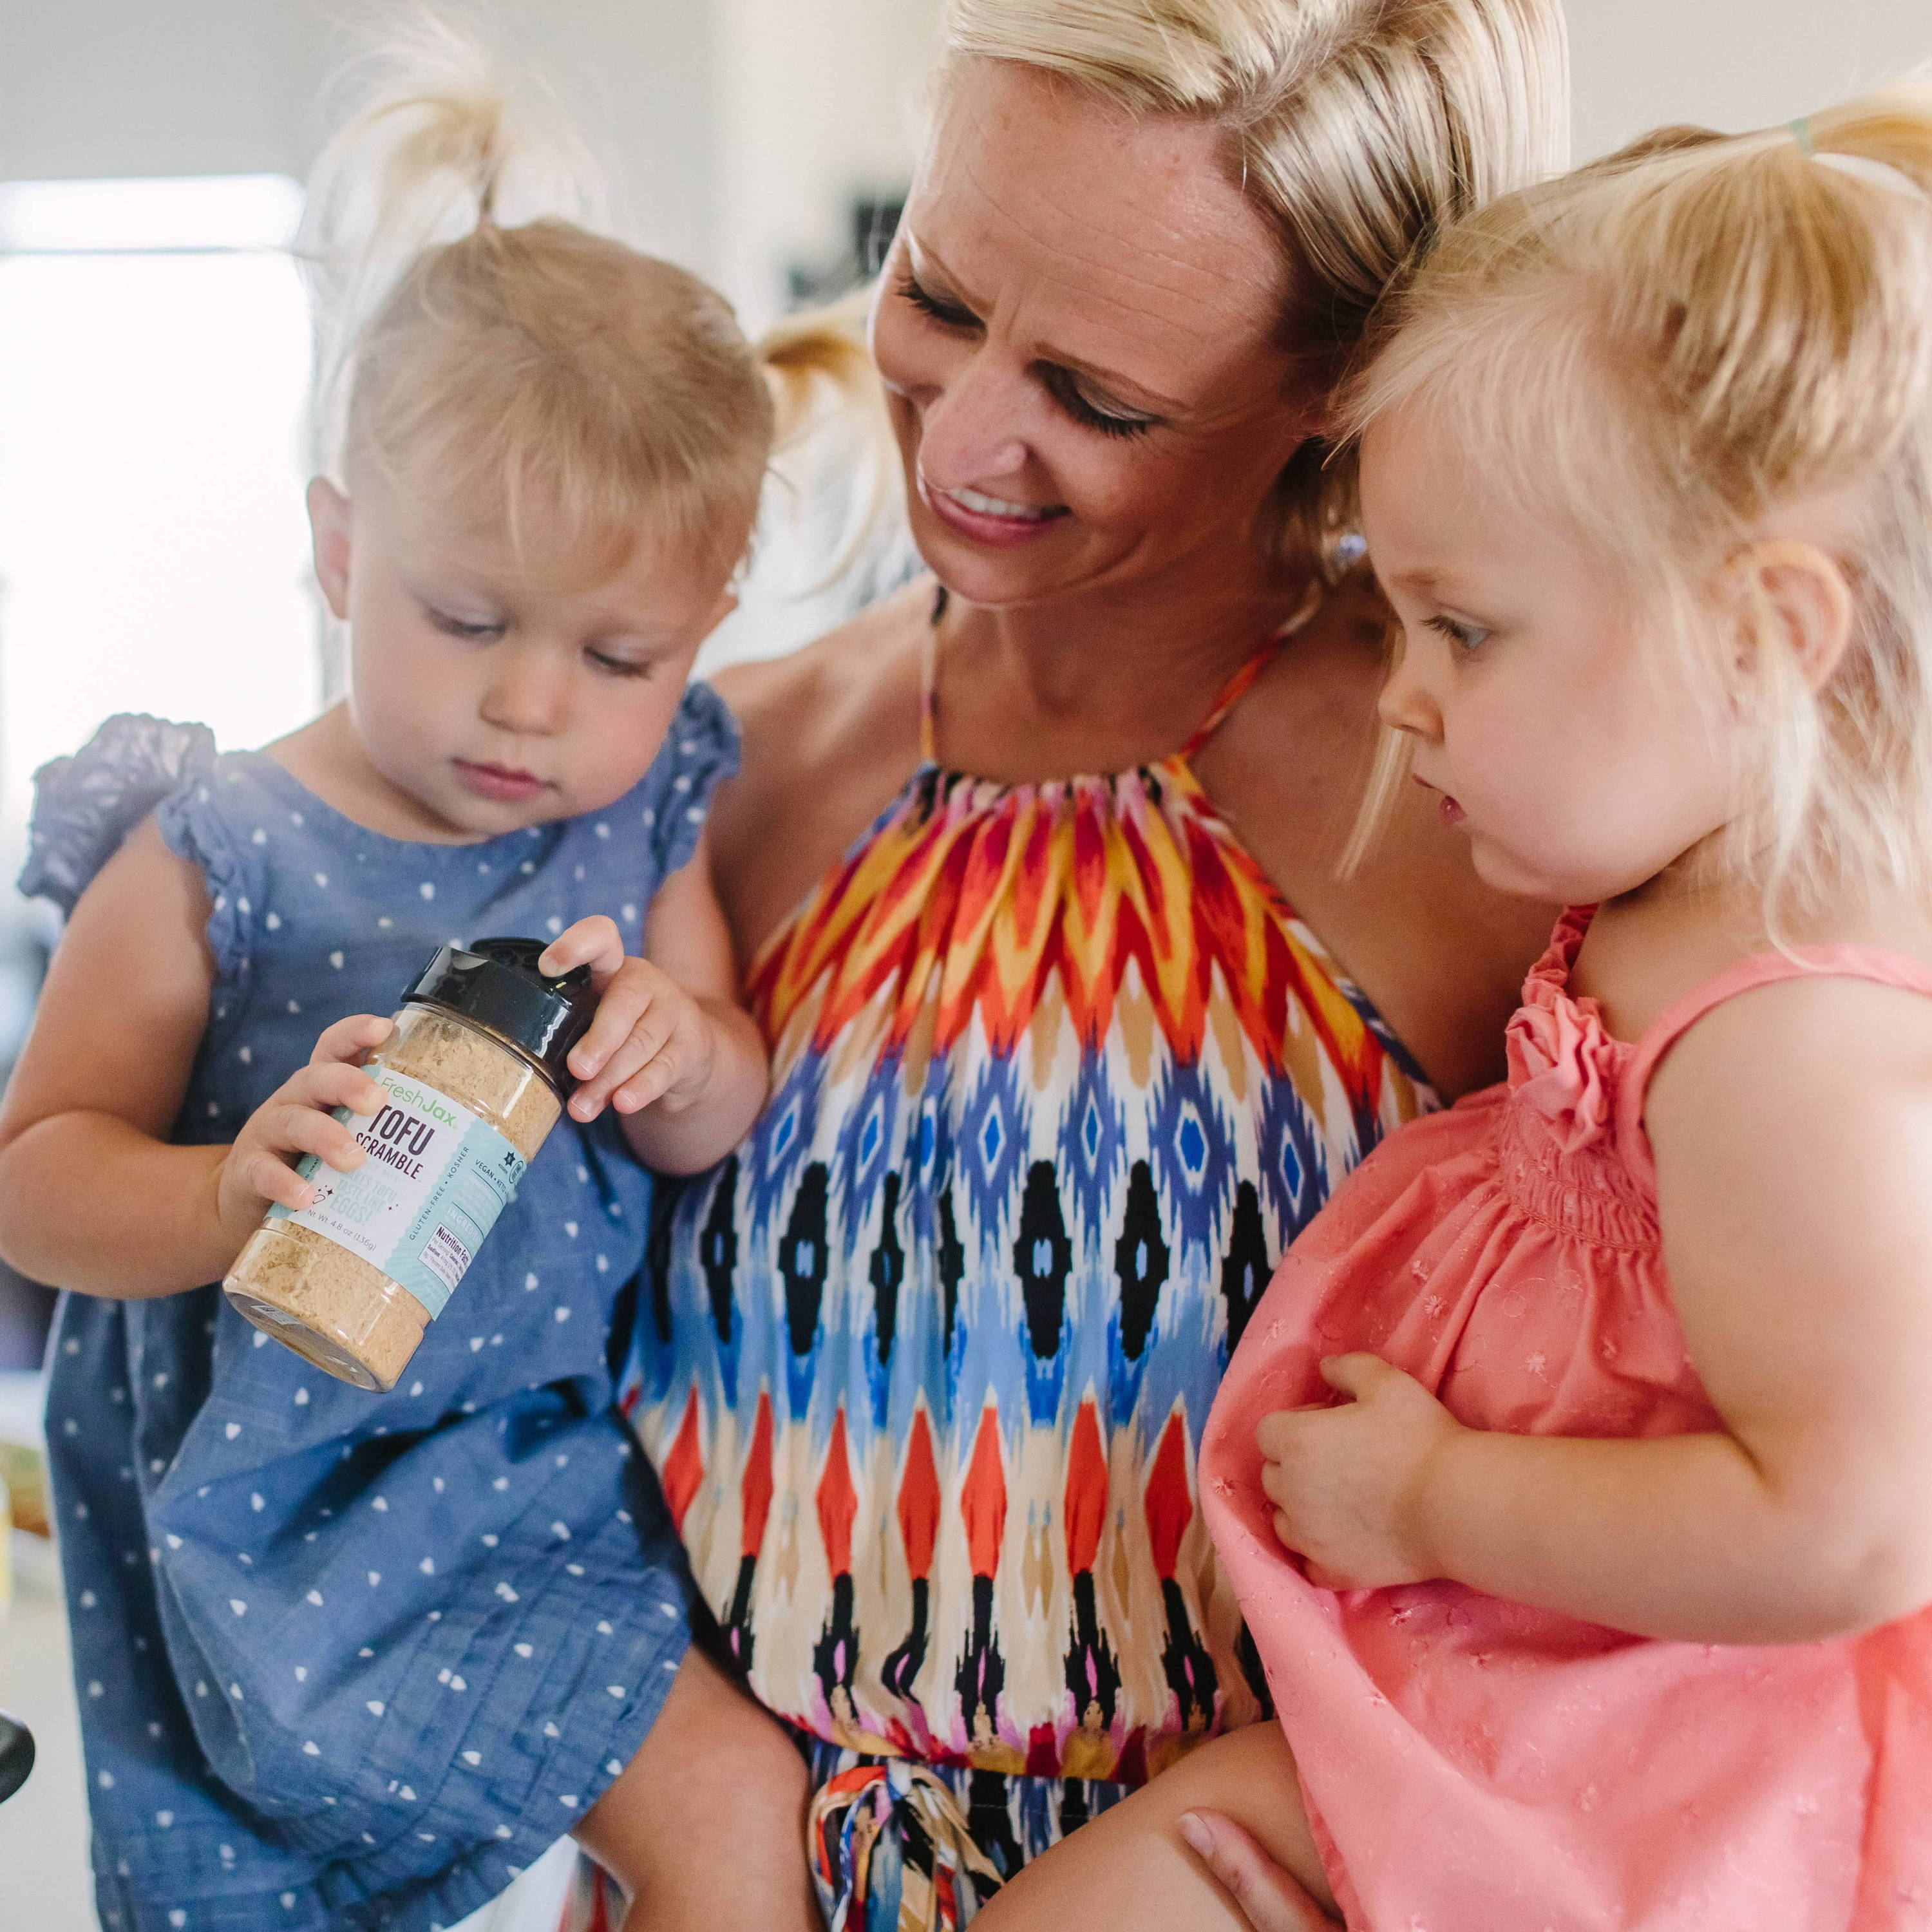 Children and mother with Tofu Scramble vegan spice mix